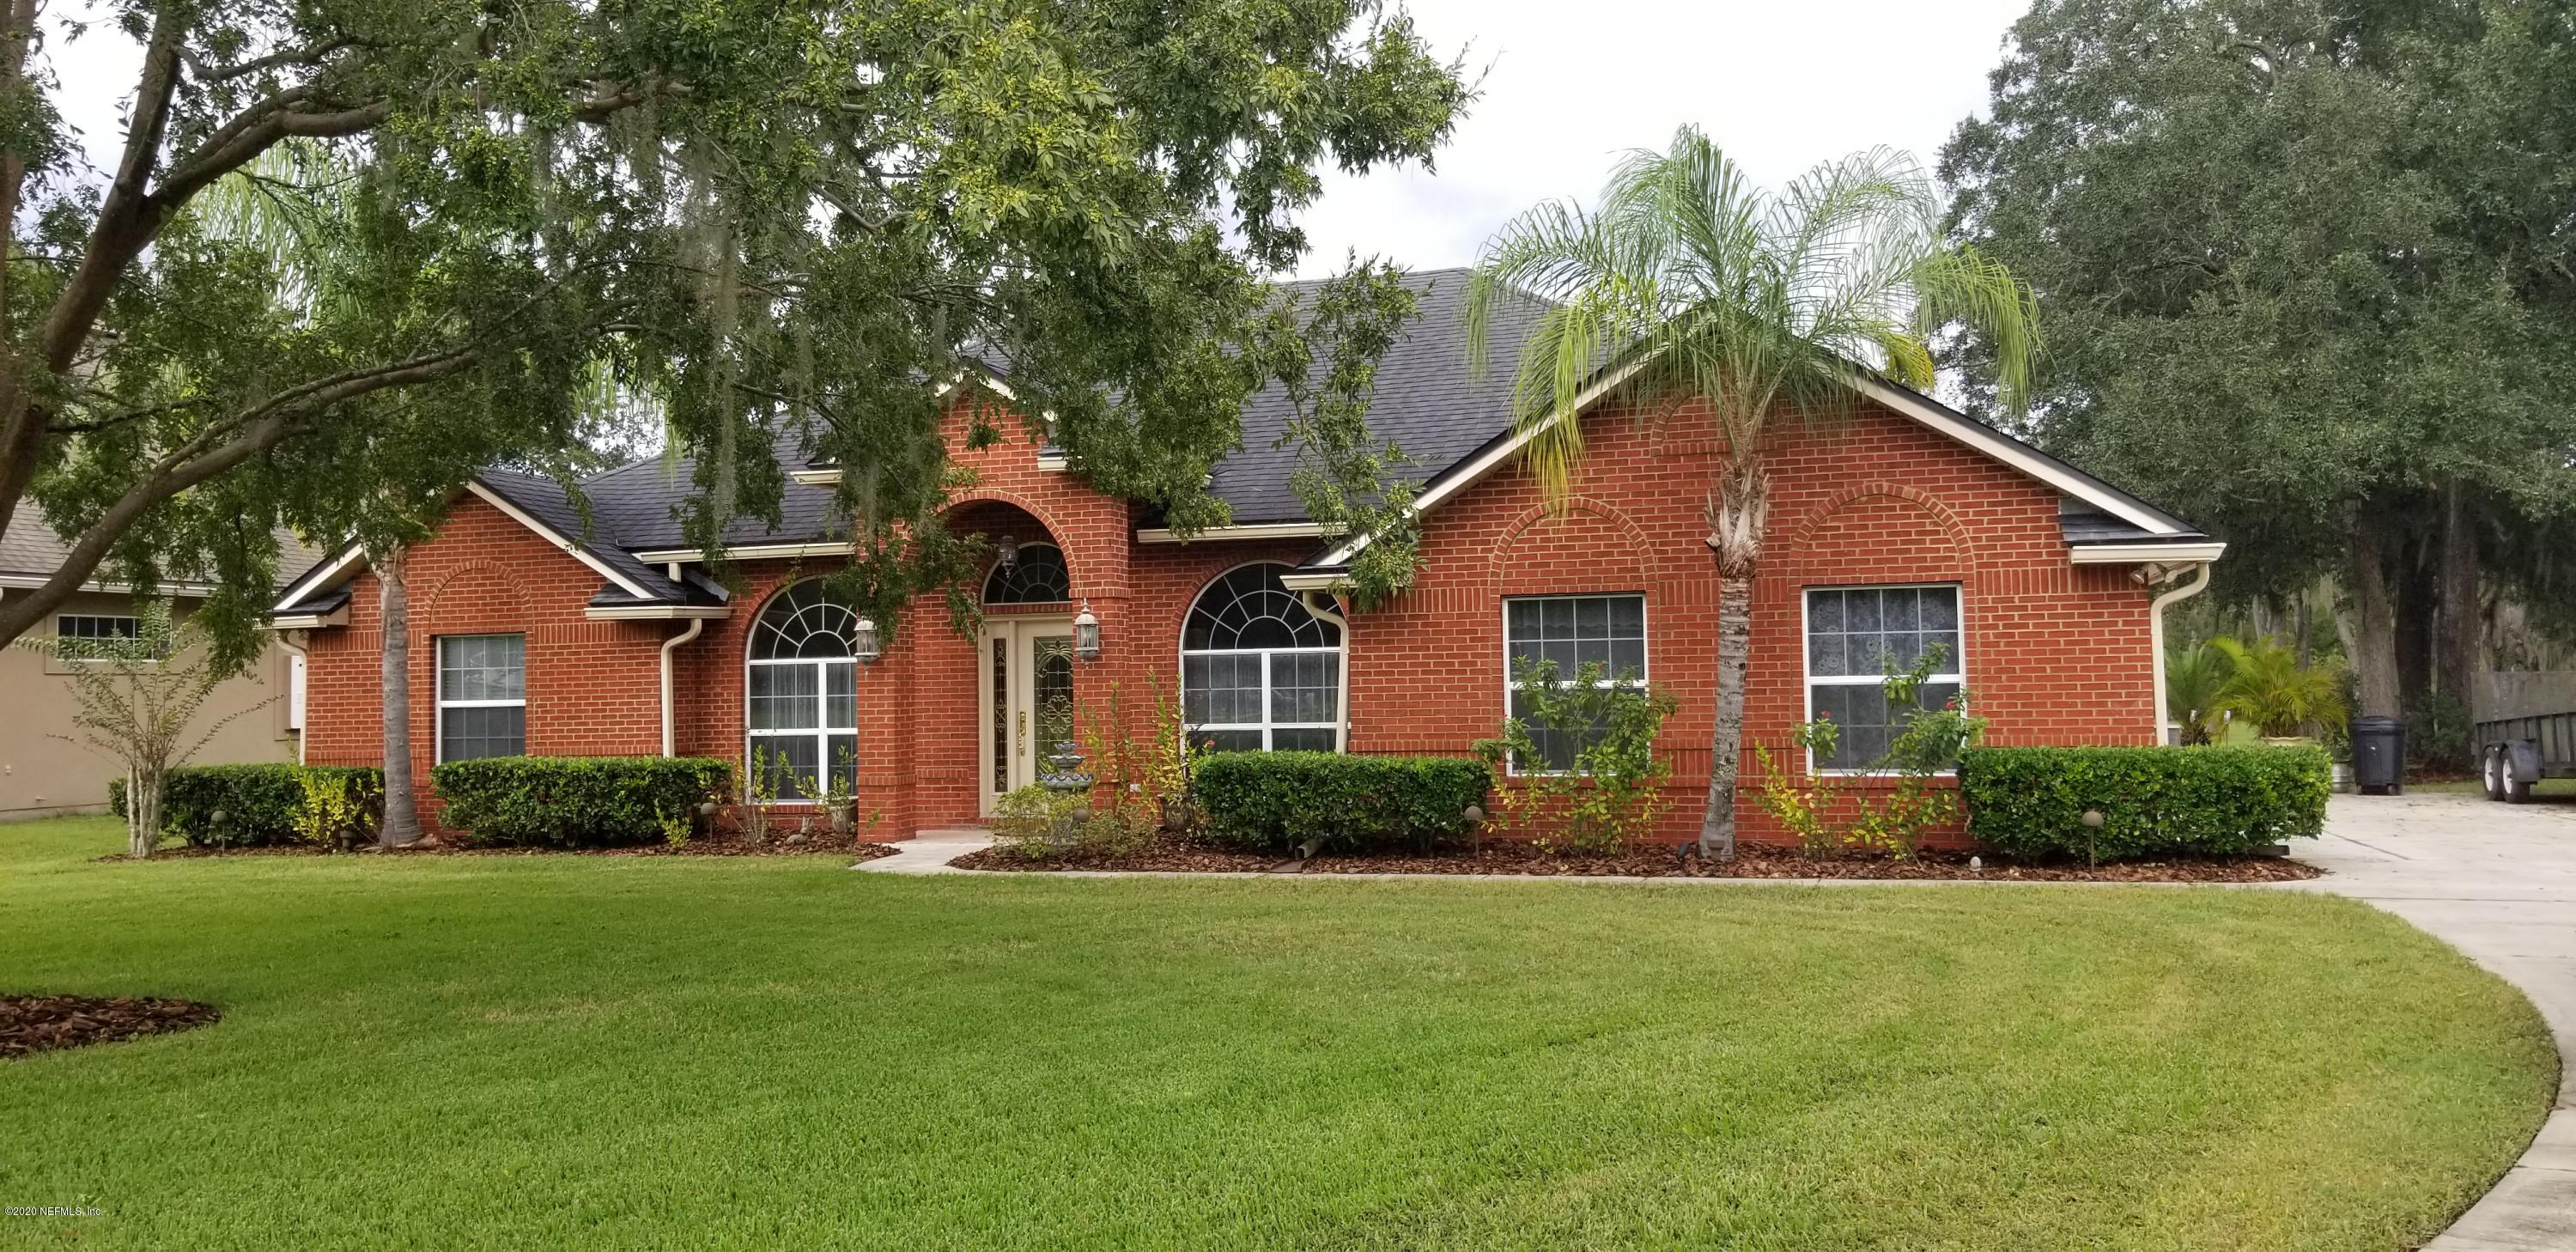 1794 LAKEMONT, MIDDLEBURG, FLORIDA 32068, 4 Bedrooms Bedrooms, ,2 BathroomsBathrooms,Residential,For sale,LAKEMONT,1079619